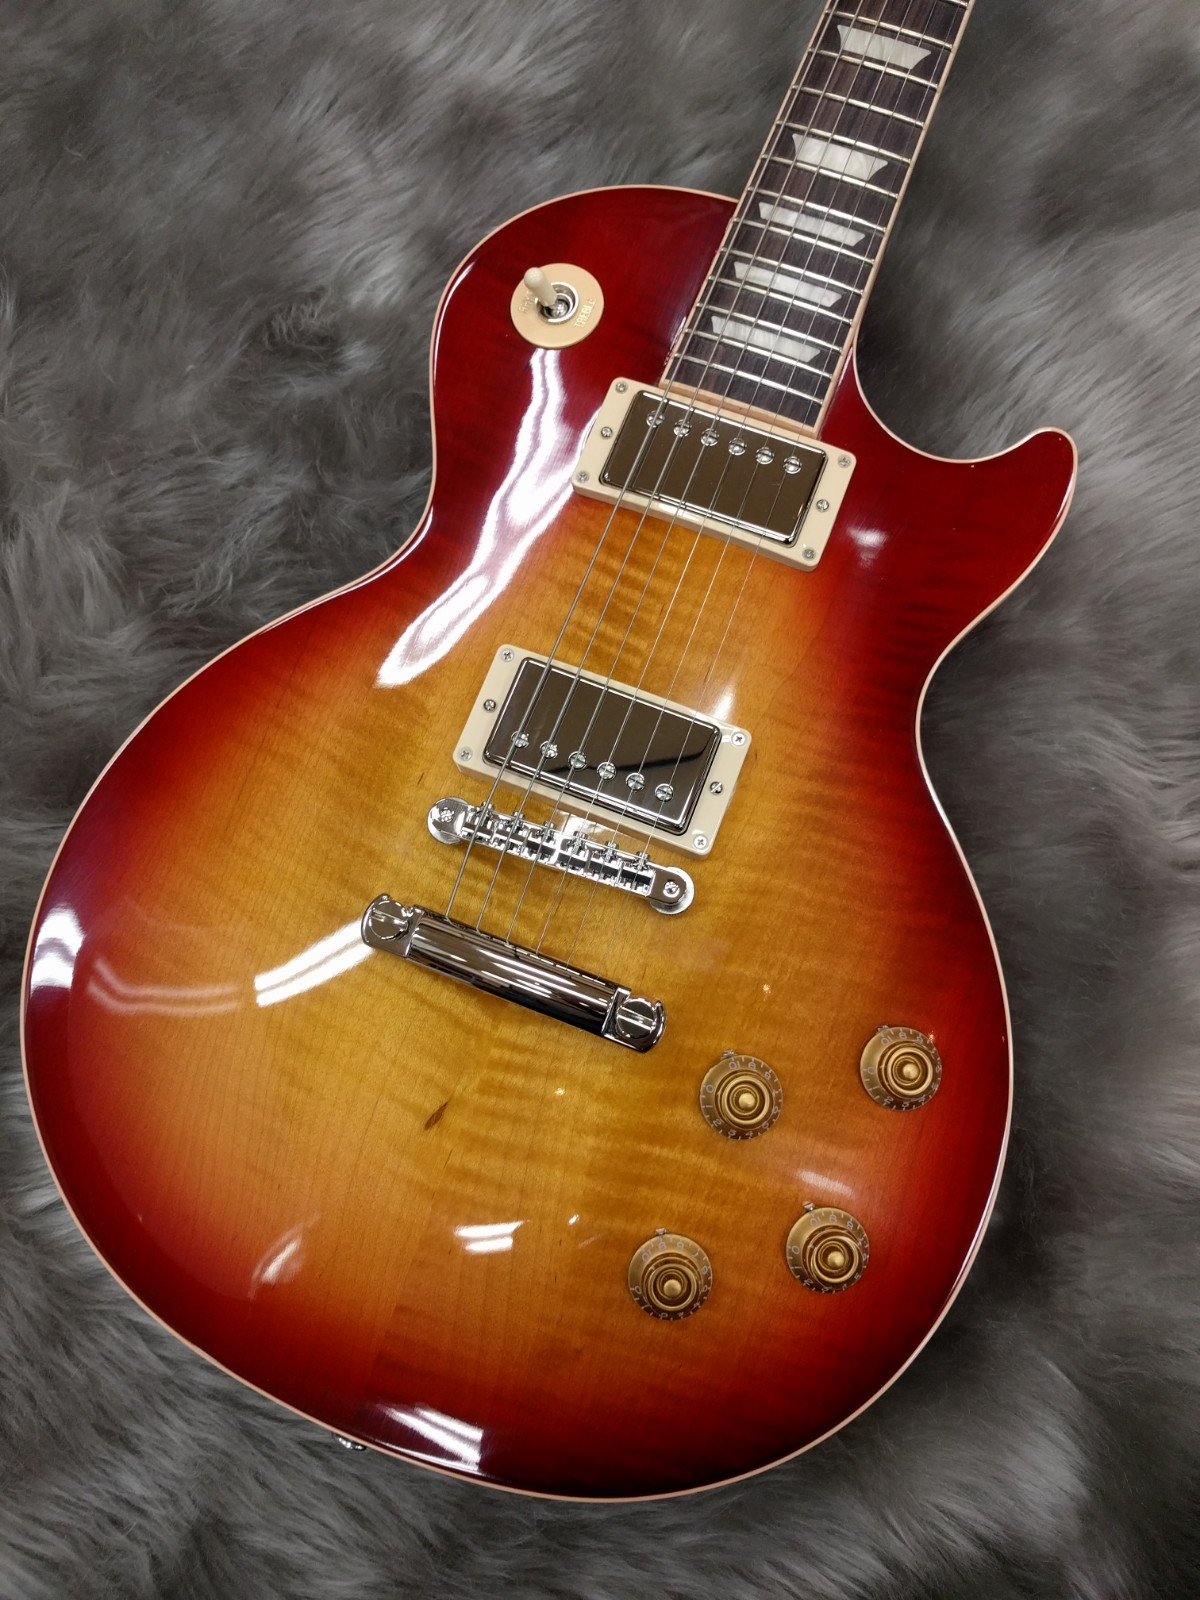 GIbson Les Paul Traditional 2018のボディトップ-アップ画像